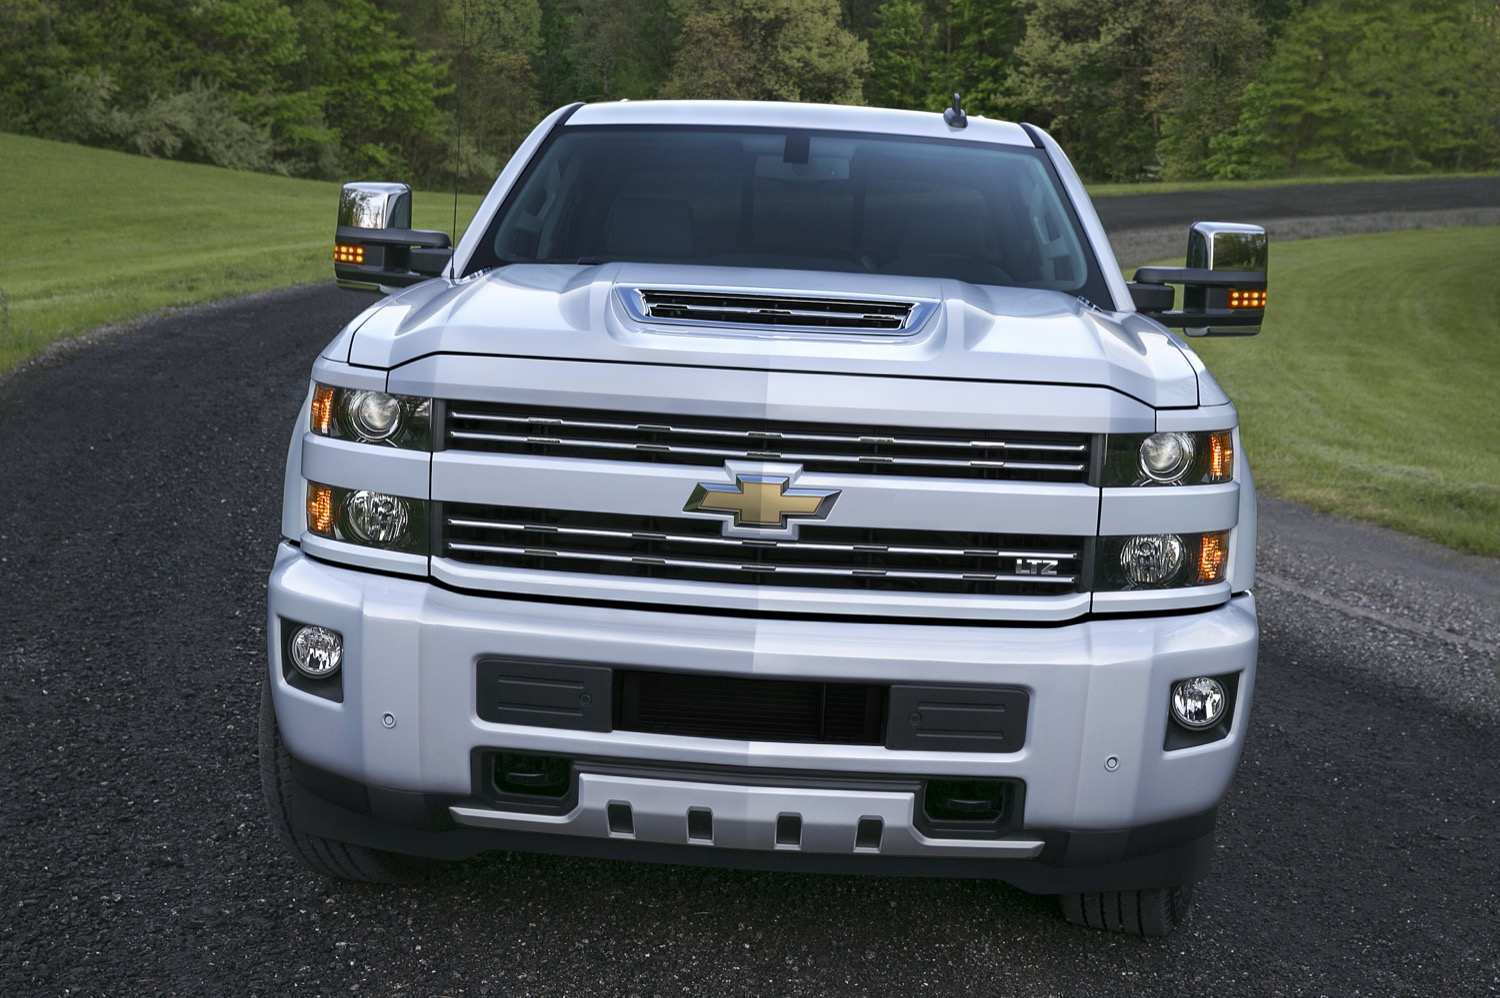 61 Great The 2019 Chevrolet Duramax Specs Price And Release Date Performance and New Engine with The 2019 Chevrolet Duramax Specs Price And Release Date